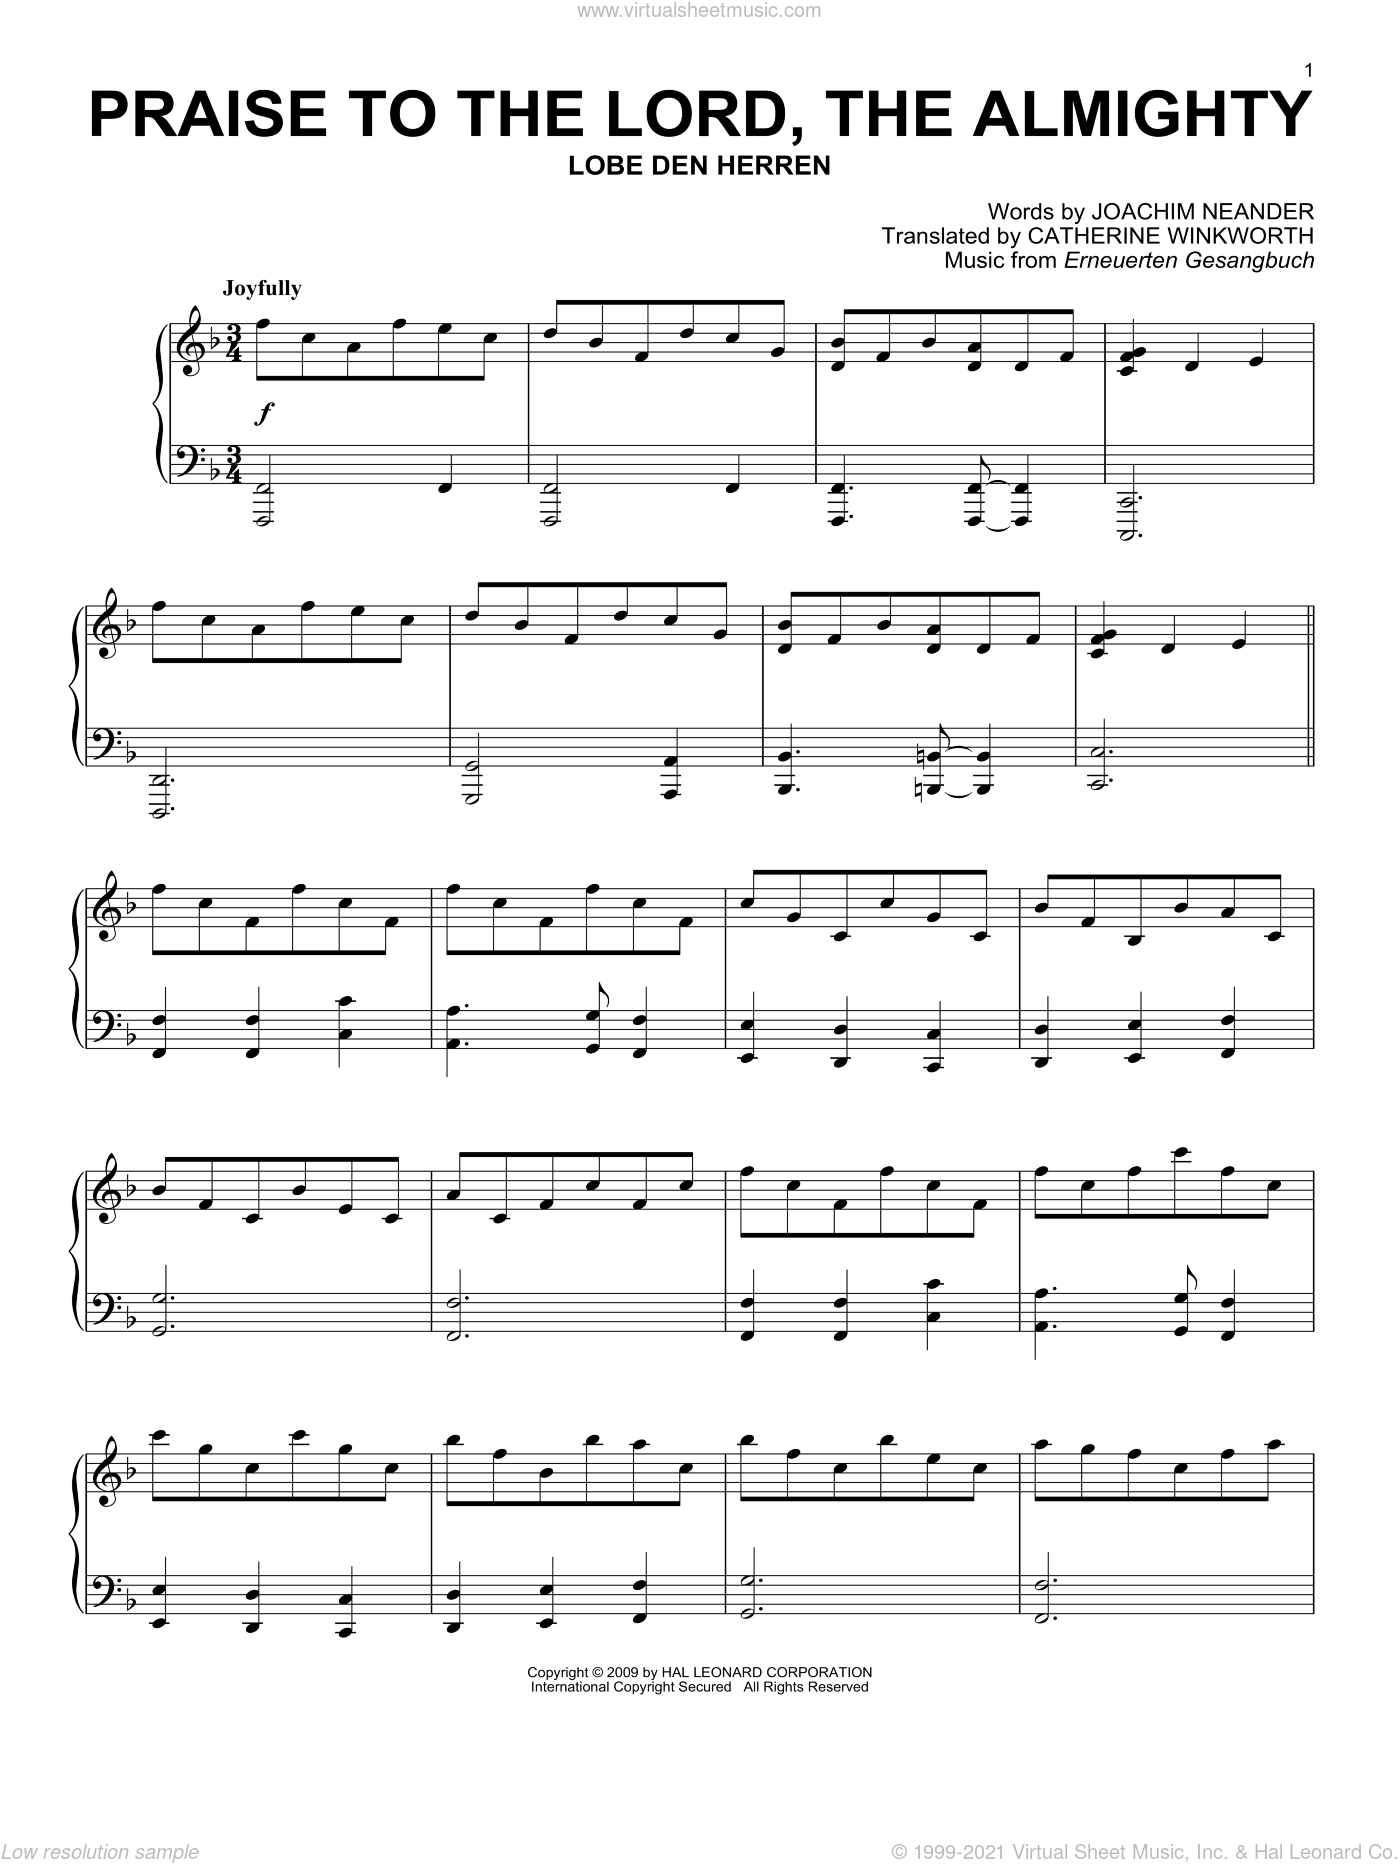 Praise To The Lord, The Almighty sheet music for piano solo by Erneuerten Gesangbuch